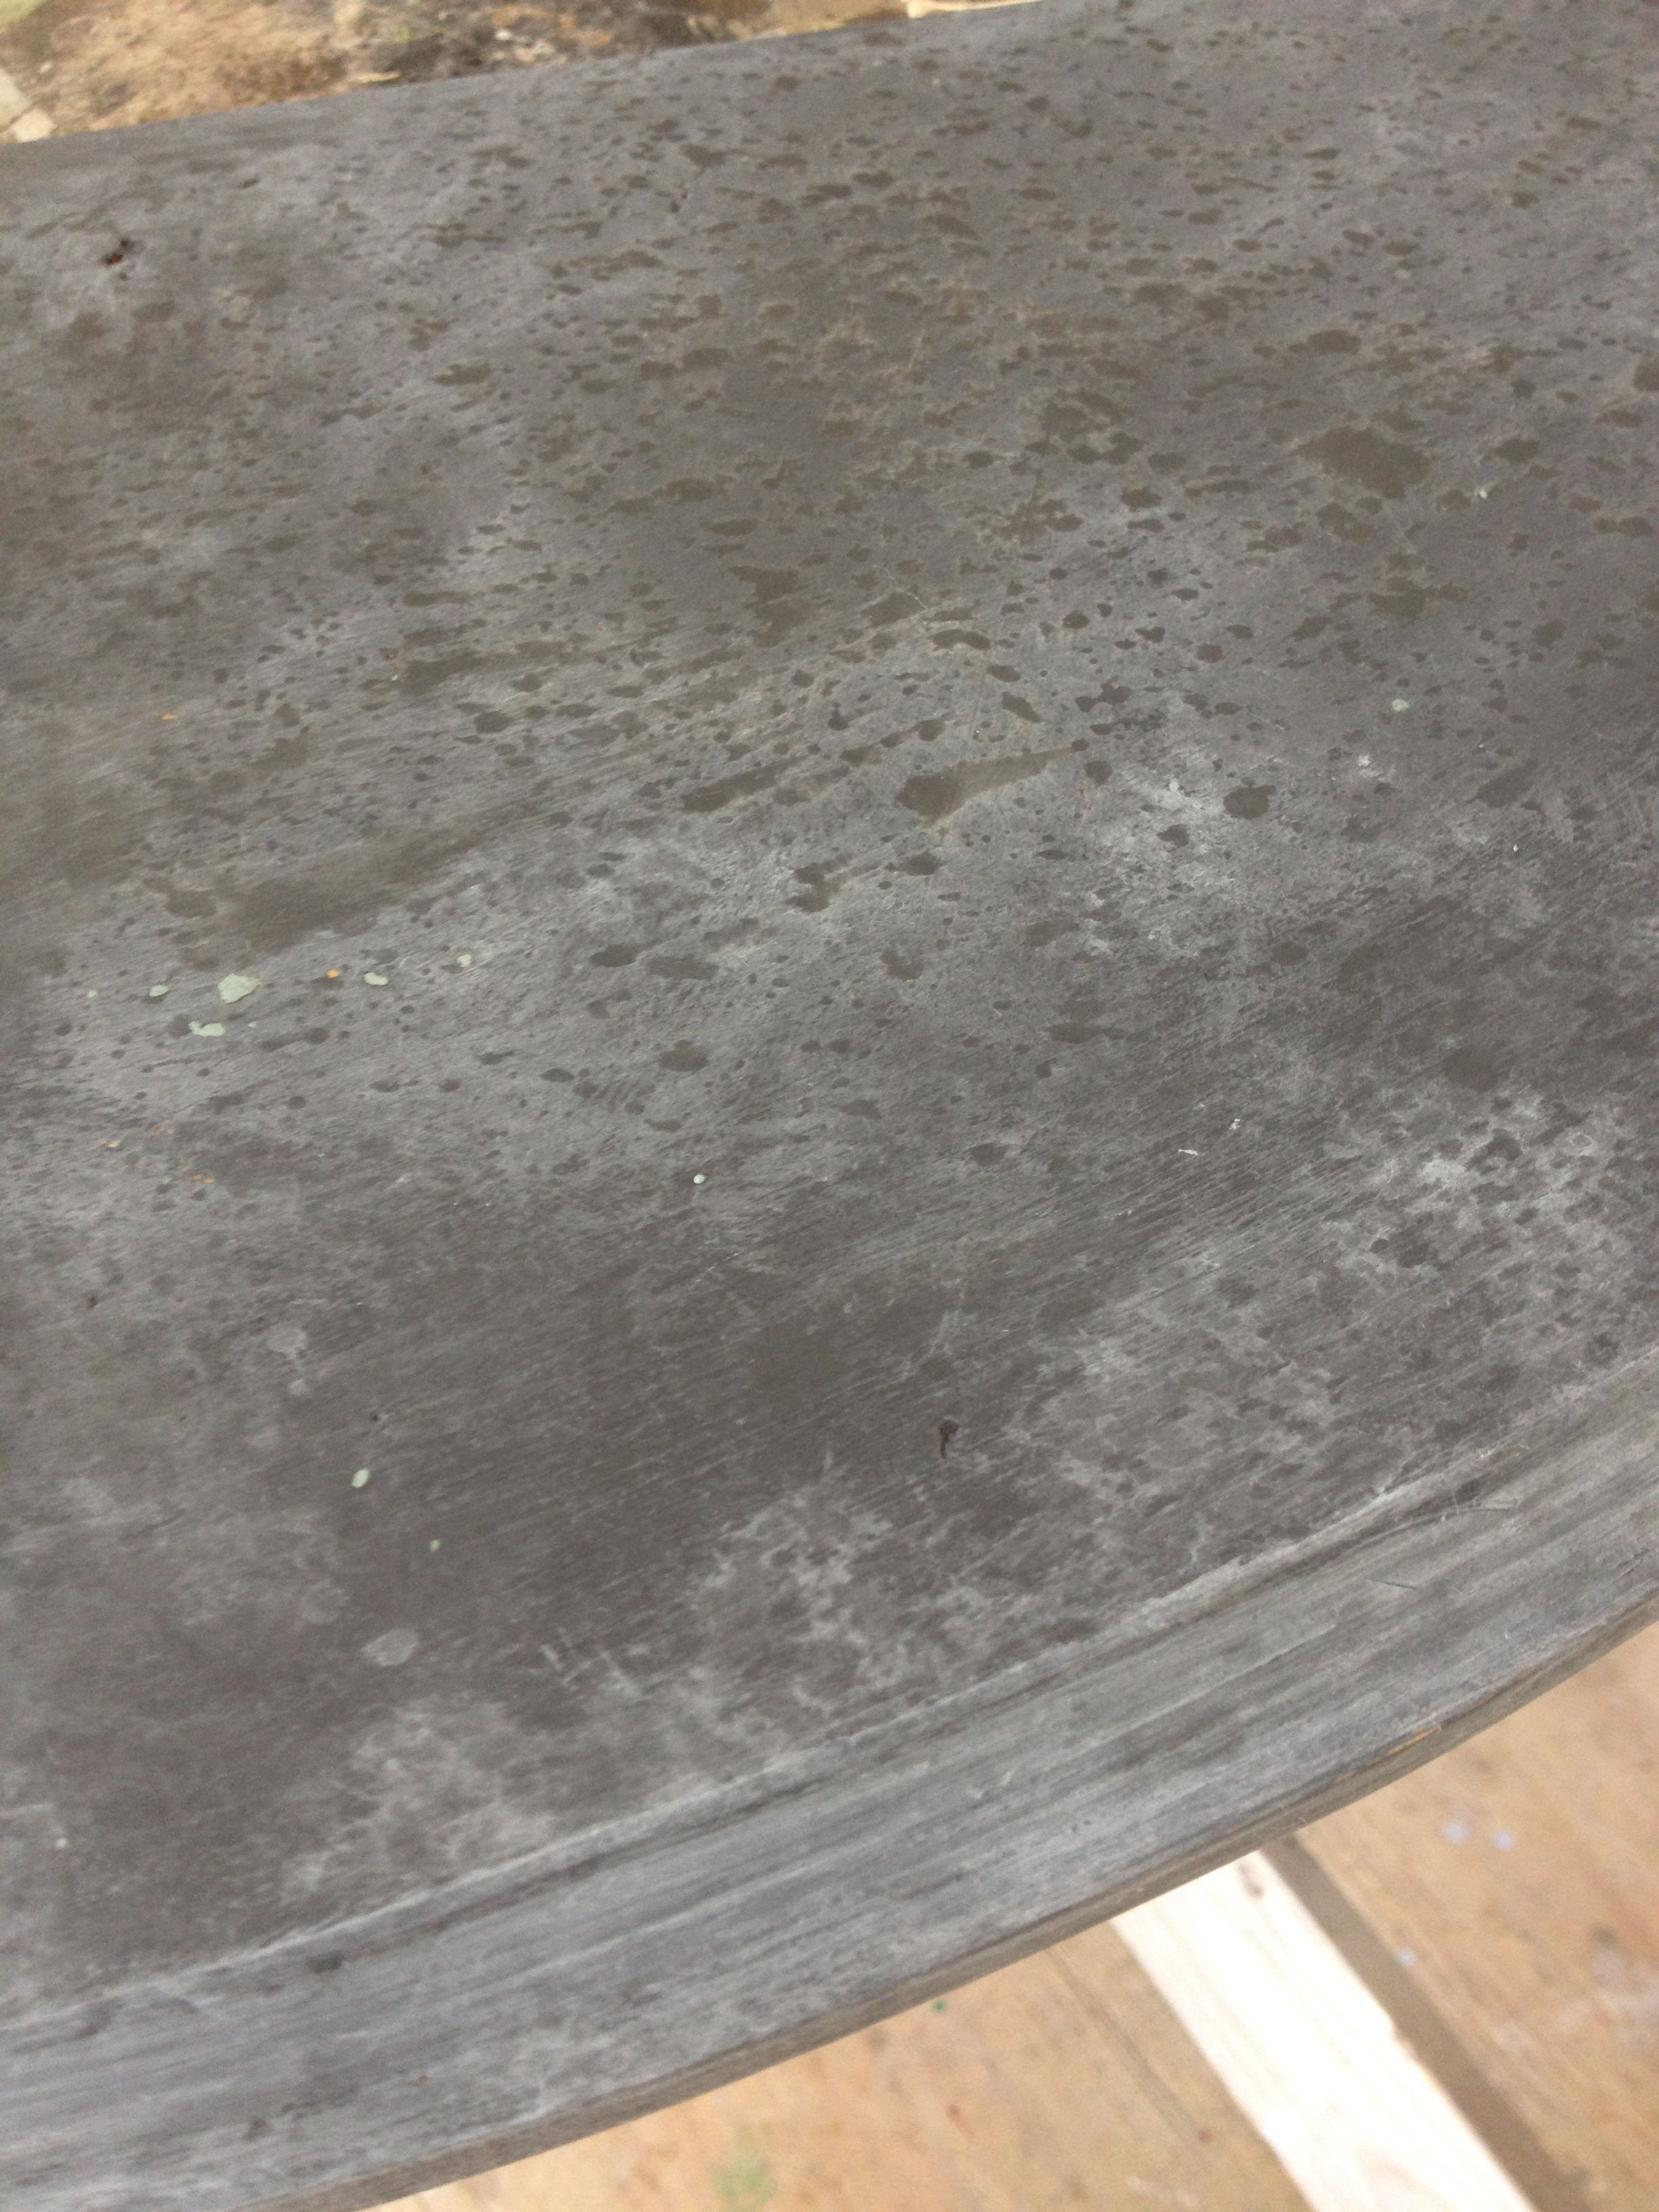 marble table gone zinc .CHALK PAINT brand decorative paints polishes to a marble  finish in znic